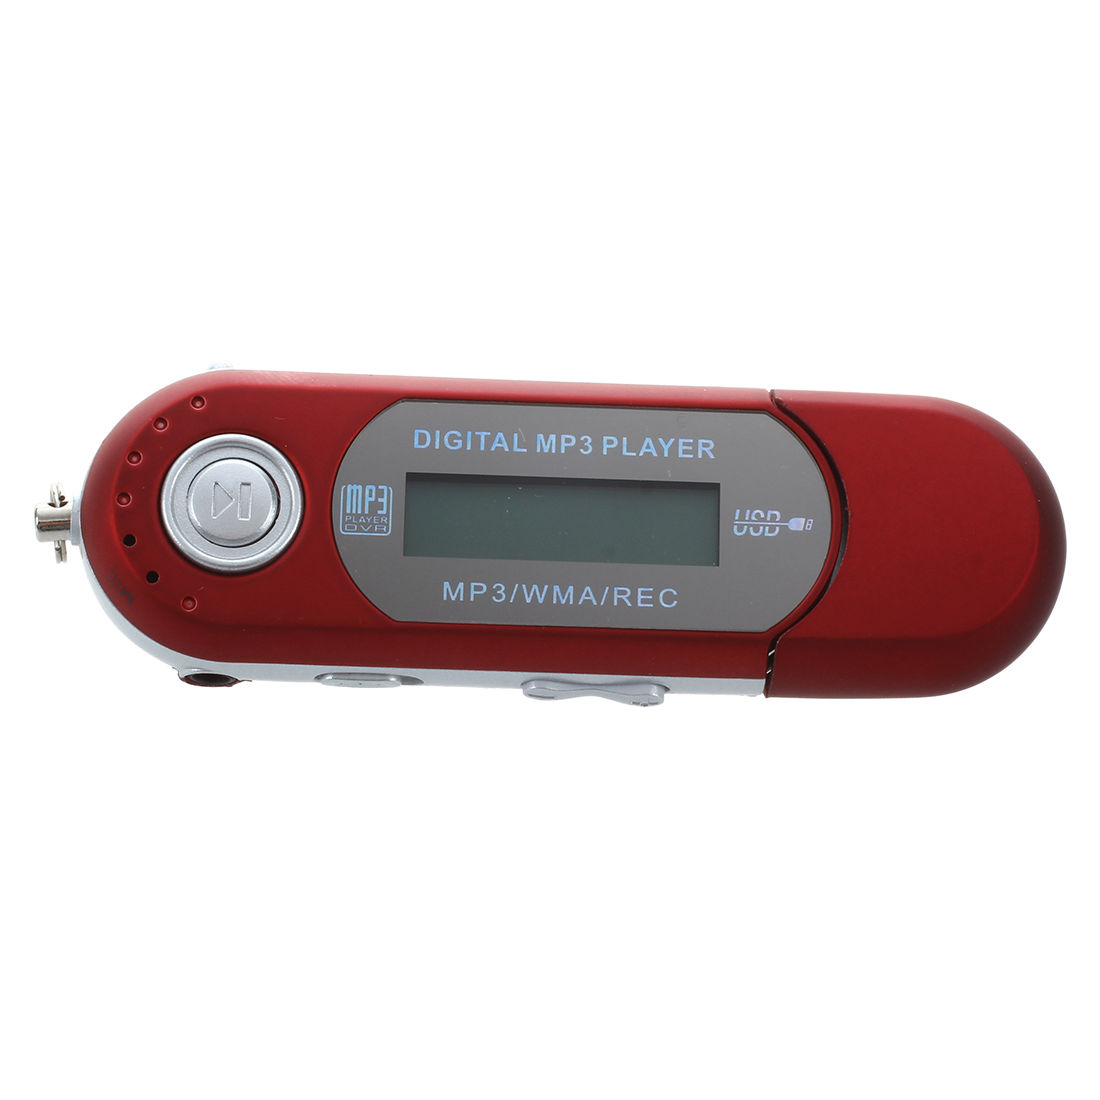 8g usb flash drive mp3 player fm walkman red sdt. Black Bedroom Furniture Sets. Home Design Ideas